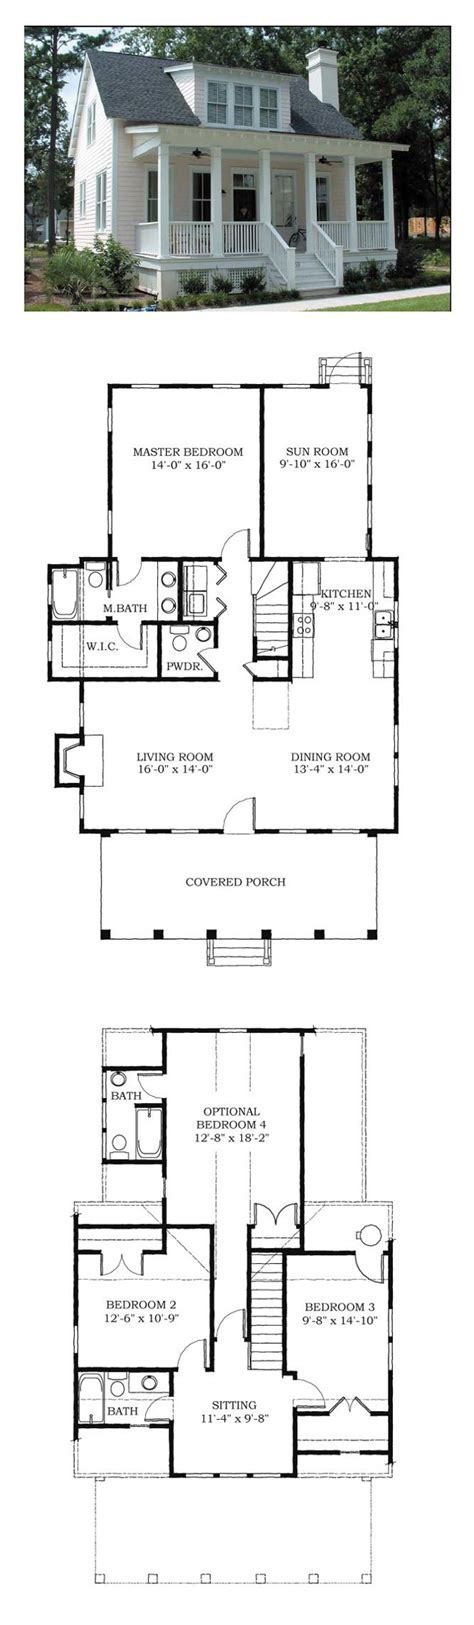 micro cottage floor plans 101 interior design ideas home bunch interior design ideas